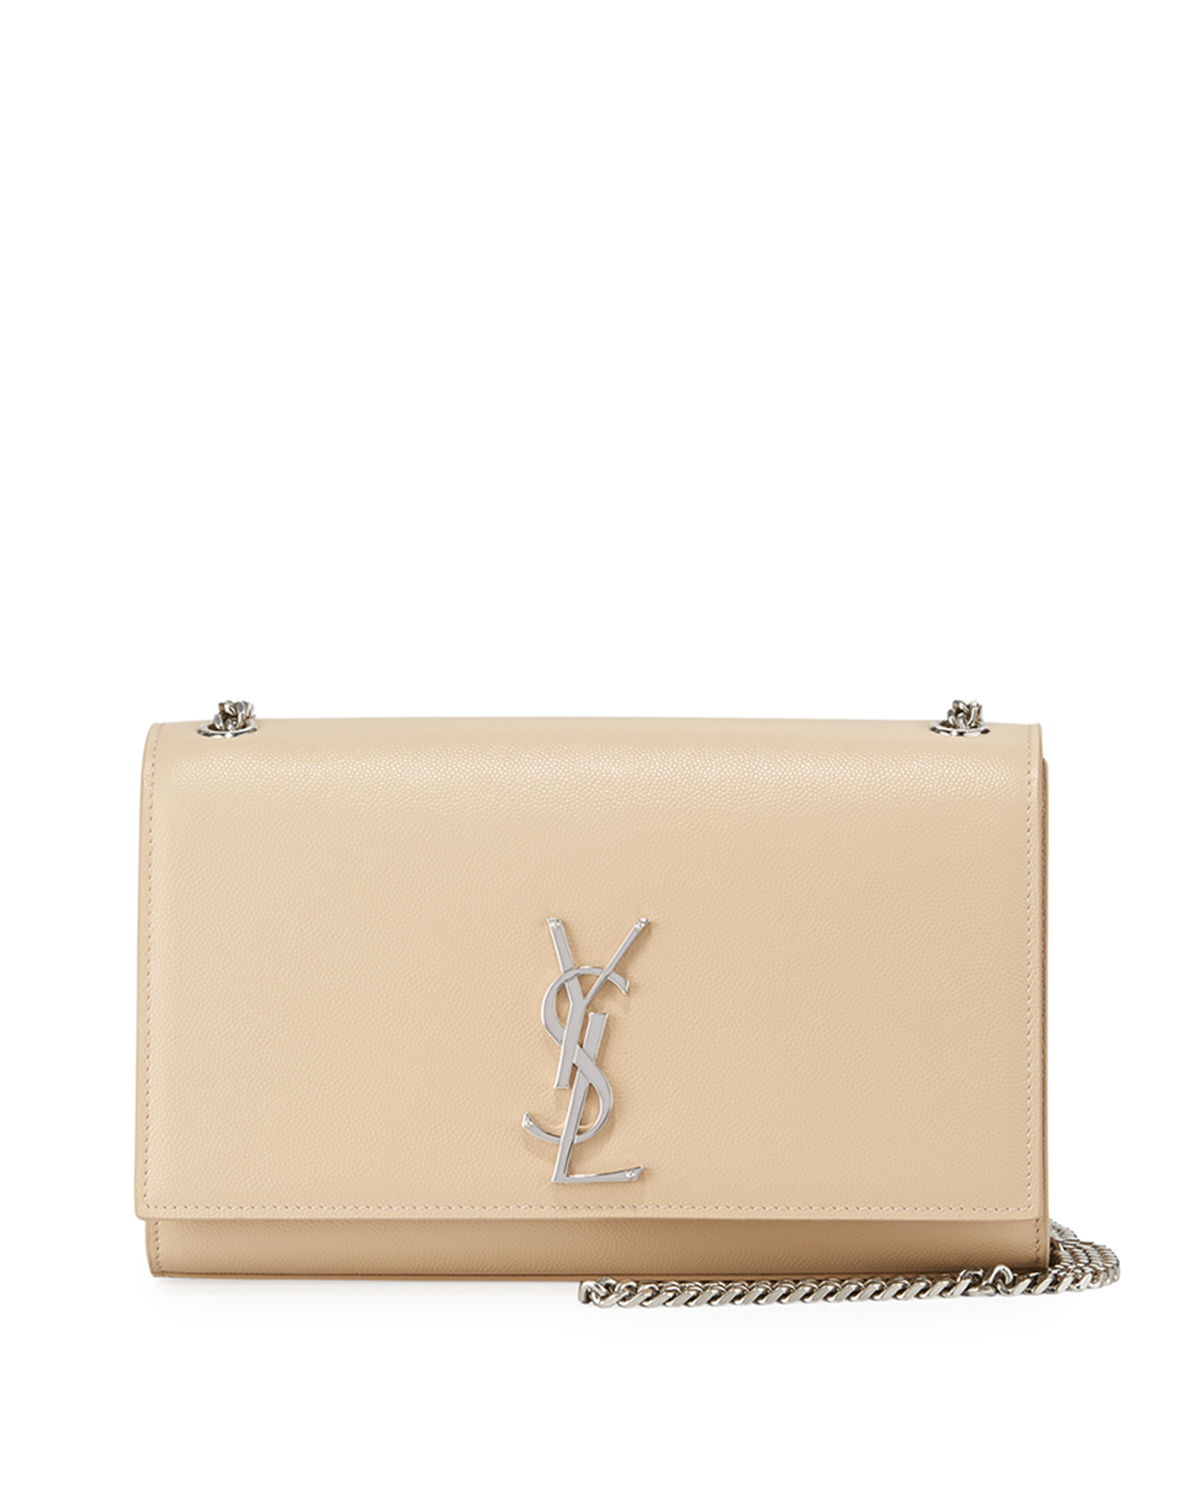 0d12ad6e30 Saint Laurent Kate Monogram YSL Medium Wallet on Chain